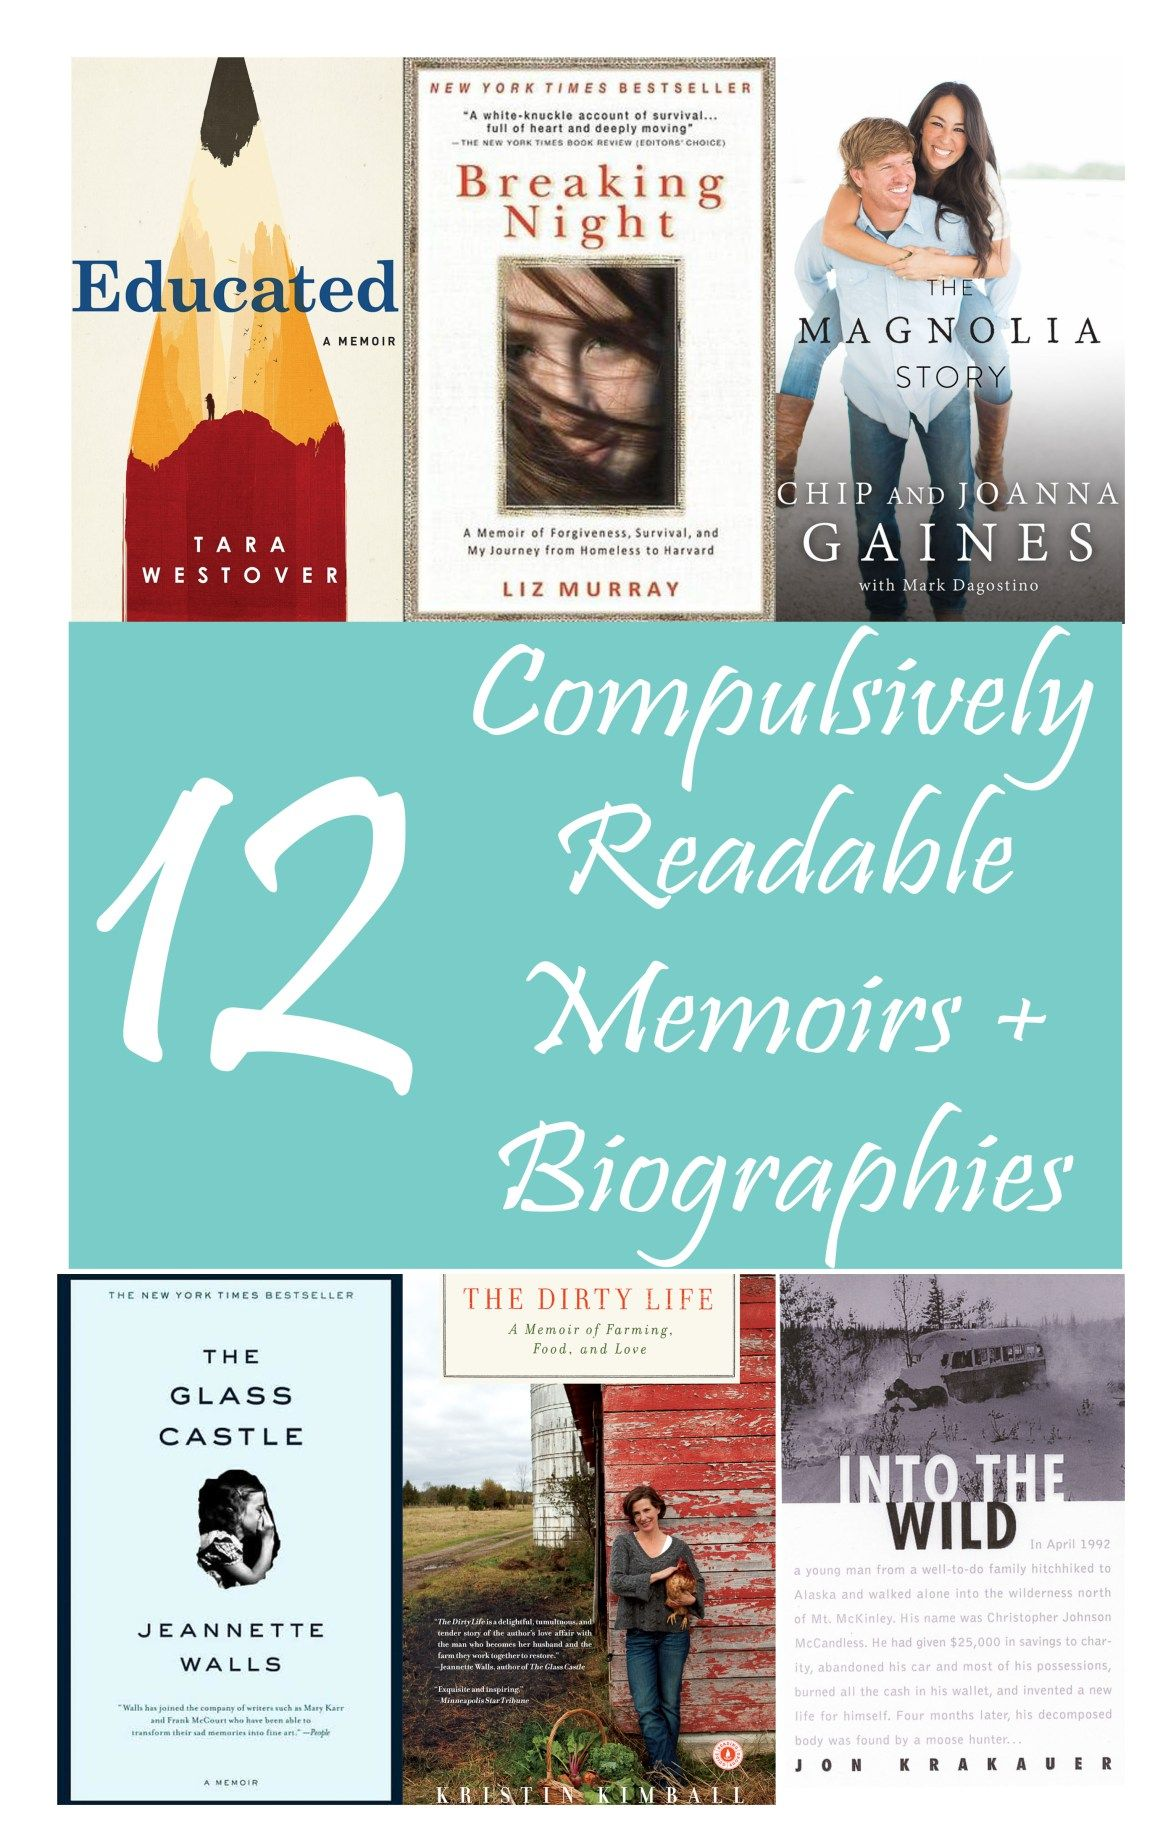 12 Compulsively Readable Memoirs + Biographies // If you're looking for  tales of real life that are as readable as many novels, check out these 12  picks!